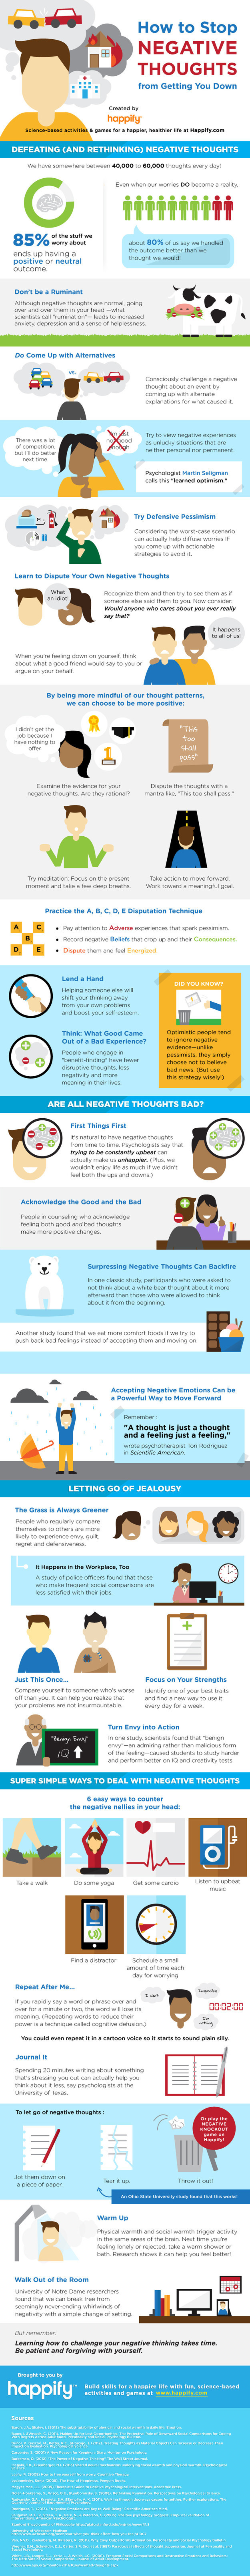 Ways to Stop Negative Thoughts